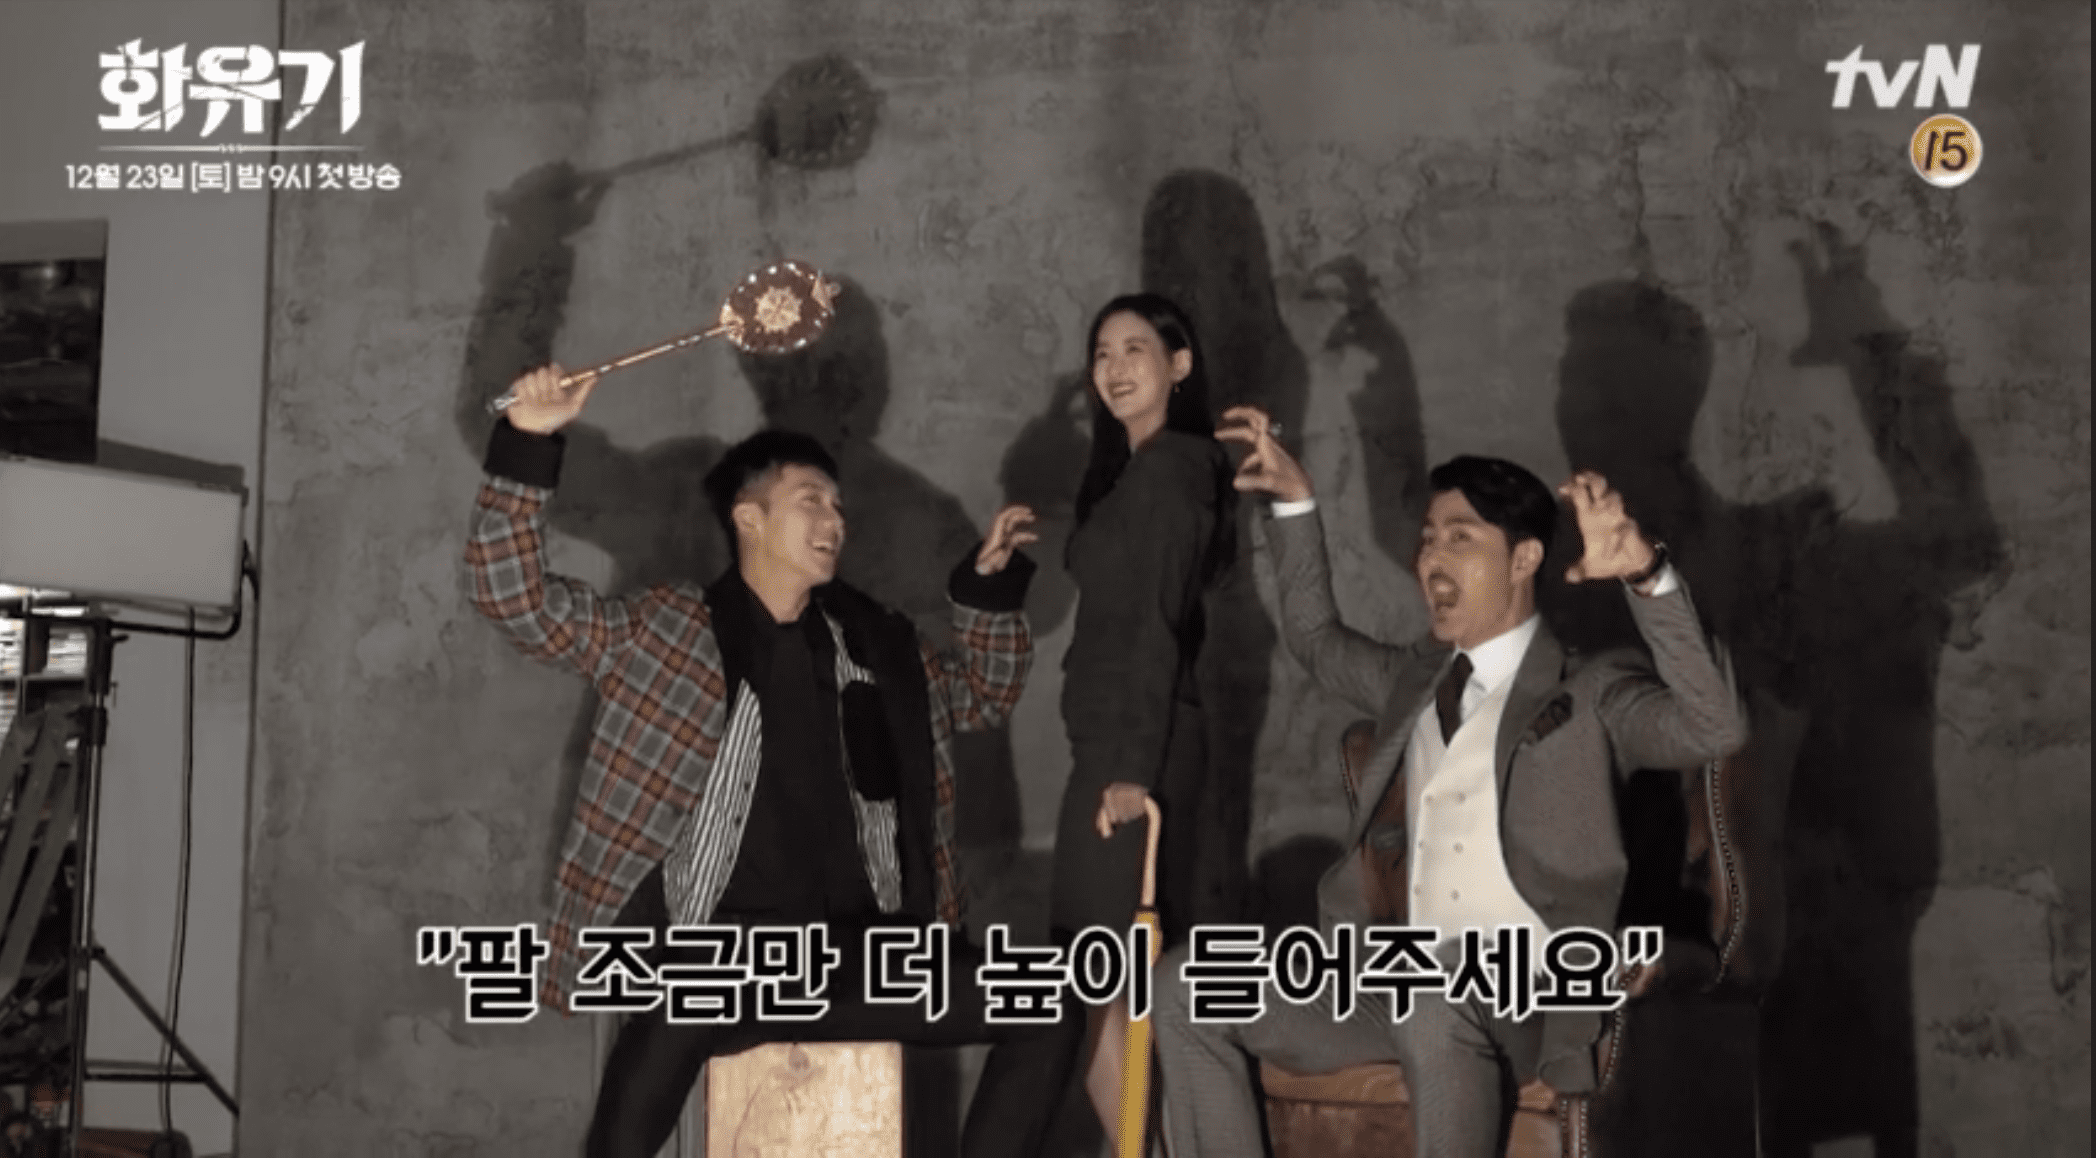 """Watch: Cast Of """"Hwayugi"""" Fool Around With Fantasy-Inspired Props During Poster Filming"""